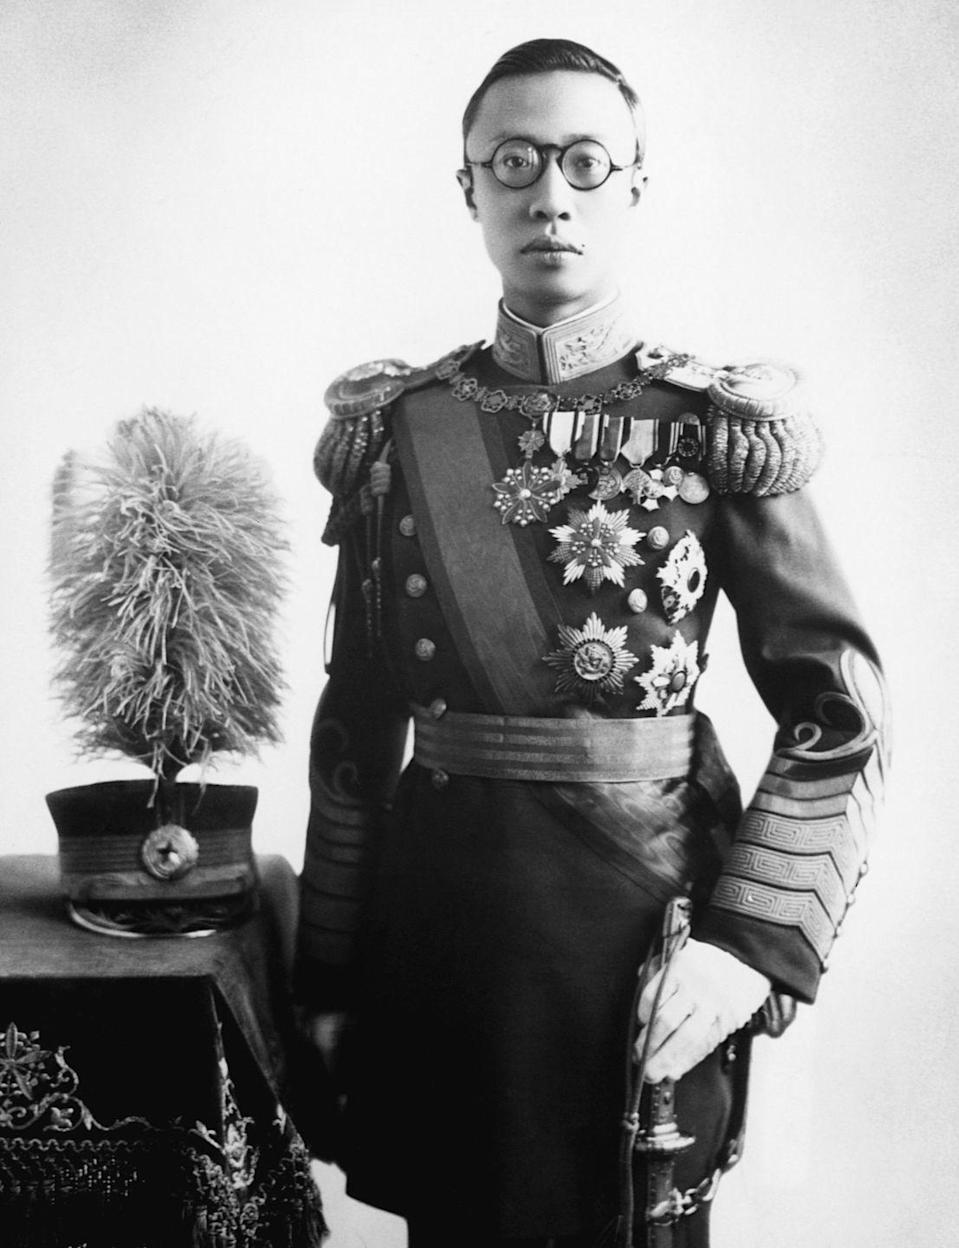 "<p>Puyi, the Last Emperor of China, married Empress Wanrong ""on December 1, 1922, the date and time having been chosen by imperial astronomers,"" per <a href=""https://www.history.com/news/royal-weddings-gone-bad"" rel=""nofollow noopener"" target=""_blank"" data-ylk=""slk:History"" class=""link rapid-noclick-resp""><em>History</em></a>. The publication cited several sources suggested that Puyi, ""overwhelmed by the long night's merrymaking and distracted by the red decorations adorning the bed, panicked and fled the scene."" Perhaps not the best indicator of marital bliss.</p>"